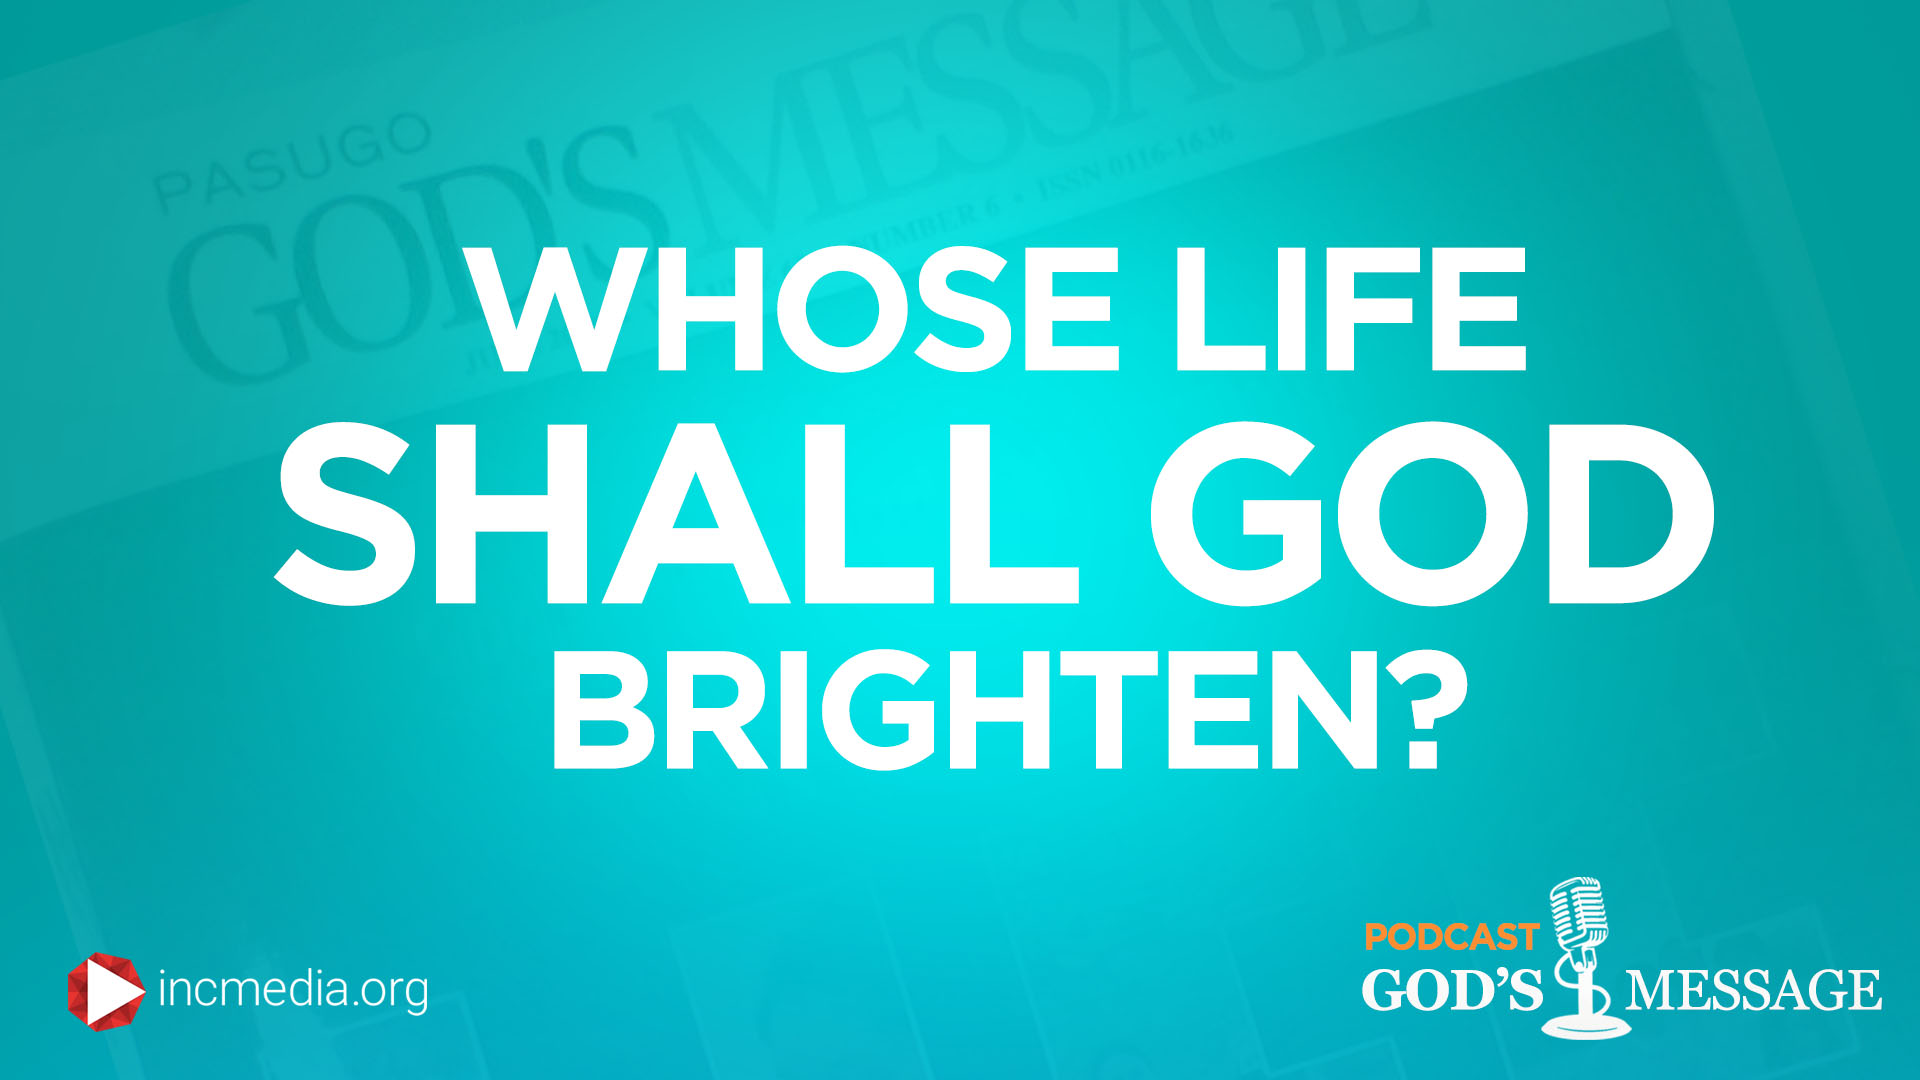 Whose Life Shall God Brighten?